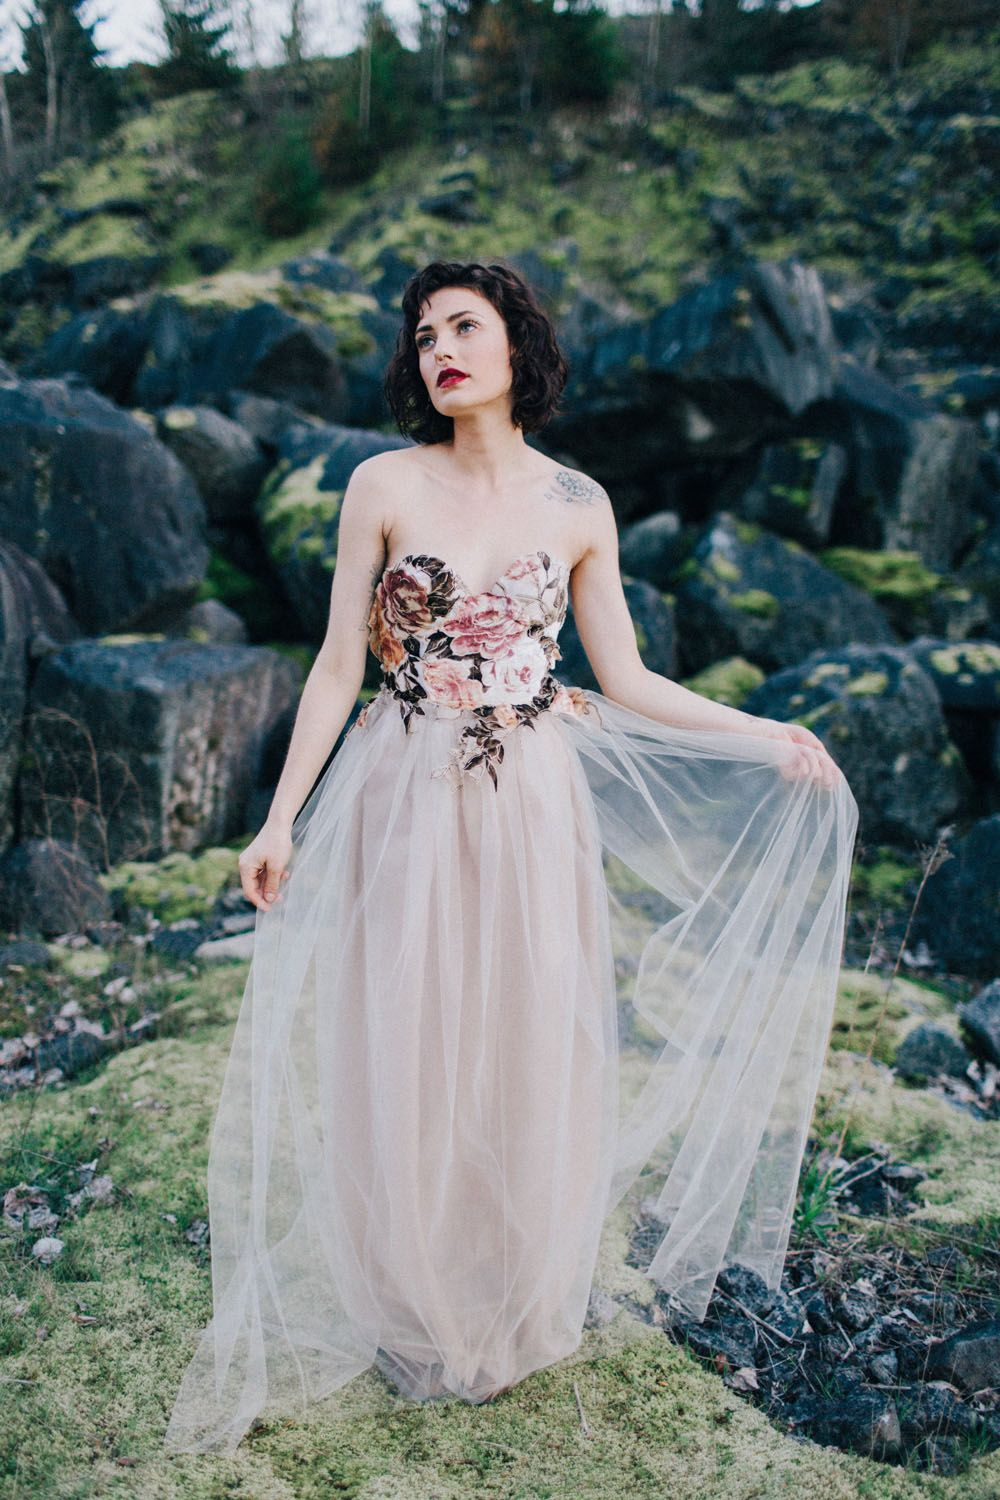 Inspired by Portland: Lady Evelyn Wedding Dresses | Our WEDDING ...